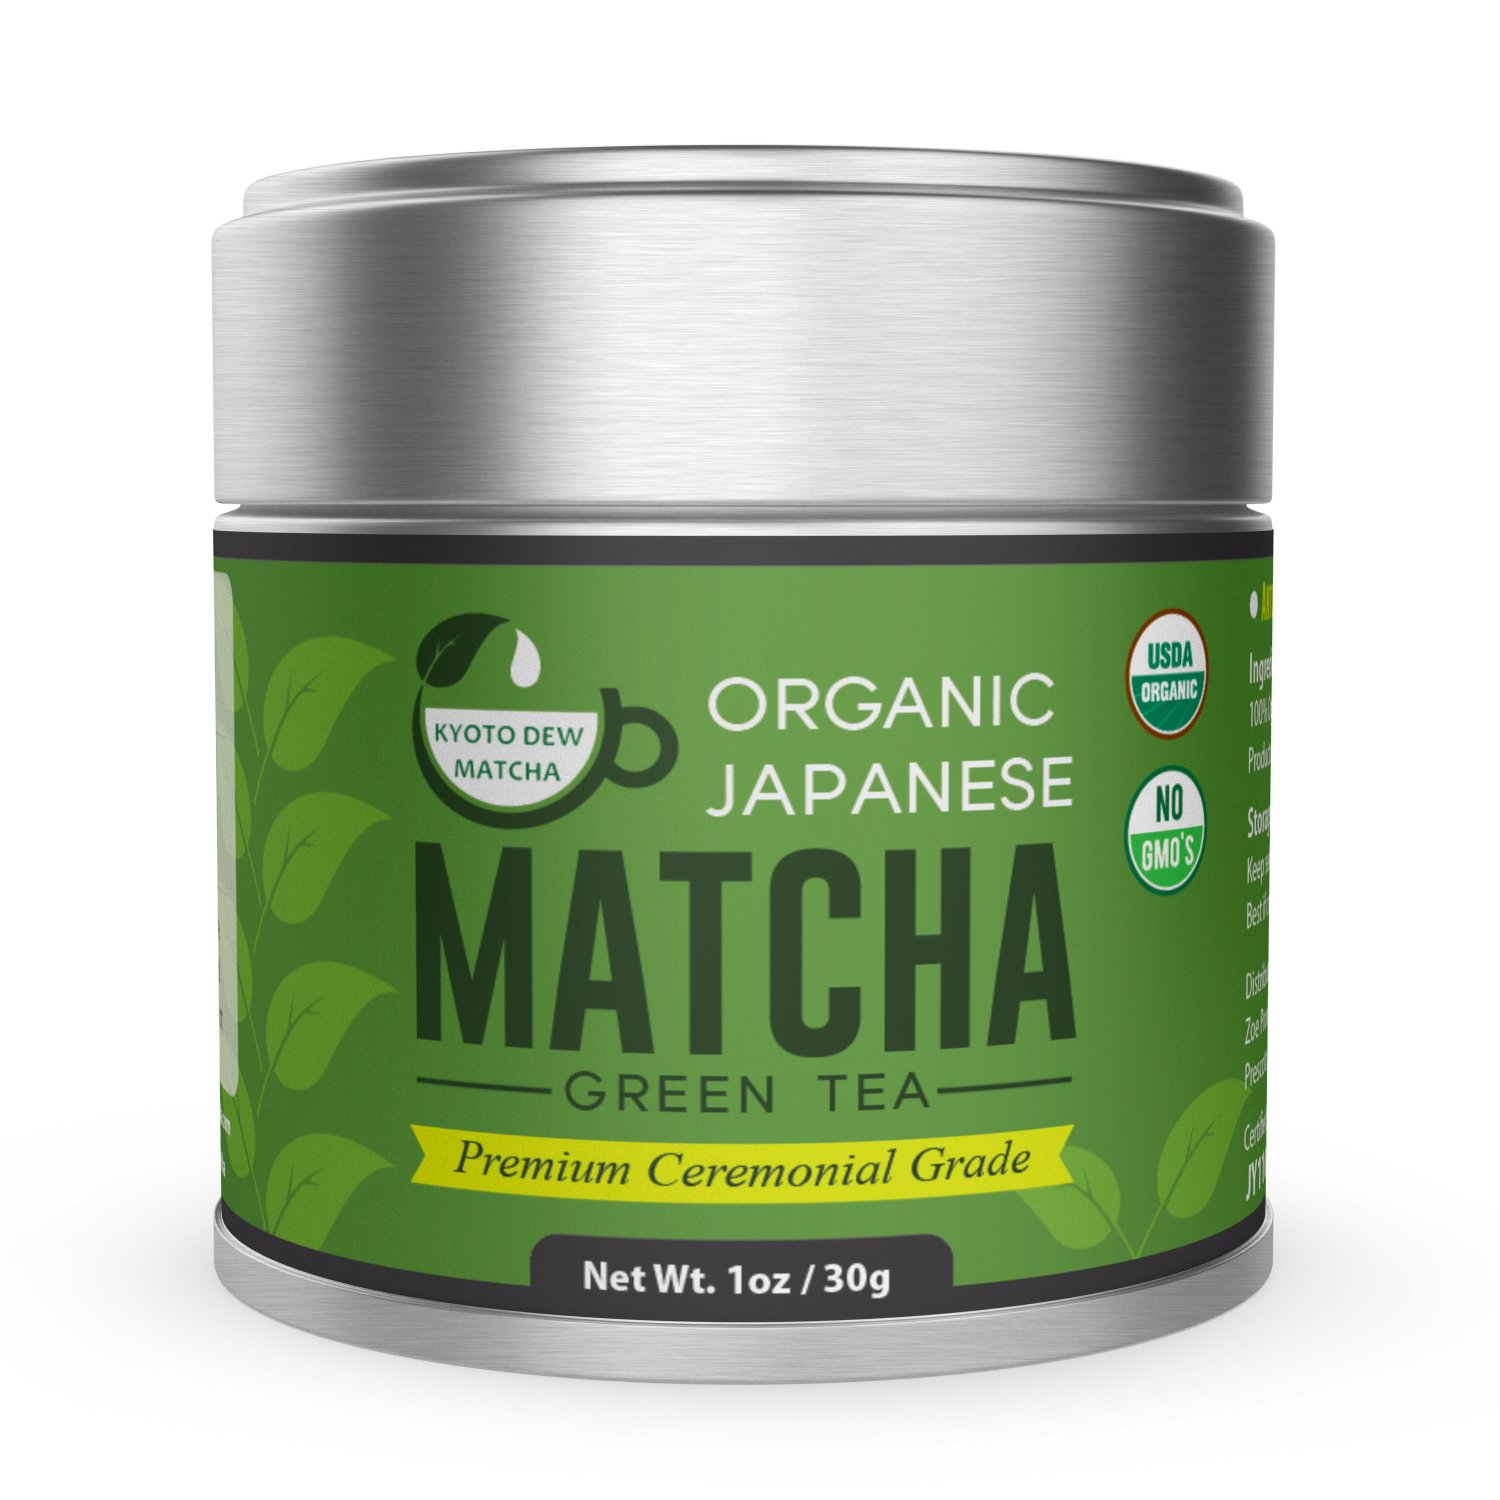 Kyoto Dew Matcha - Organic Premium Ceremonial Grade from Japan Matcha Green Tea Power - Radiation Free, Non Fillers, Zero Sugar - USDA & JAS Certified Organic 30g (1oz) Tin by Kyoto Dew Matcha